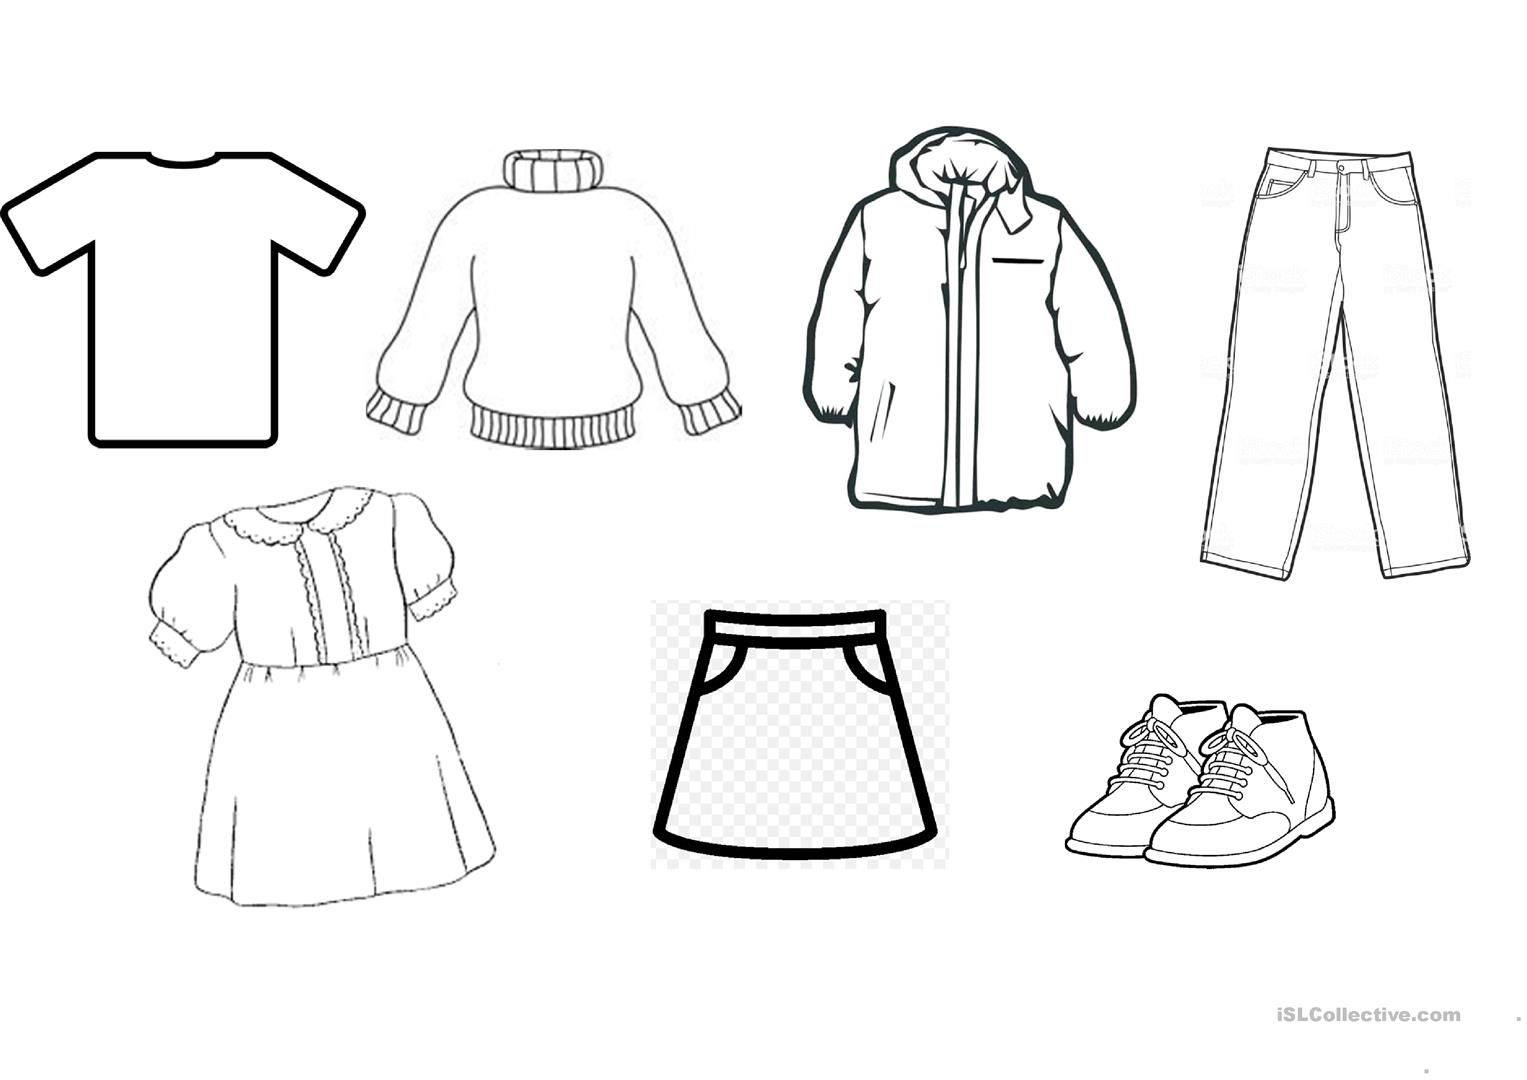 Clothes Sheet To Colour For Preschoolers Worksheet